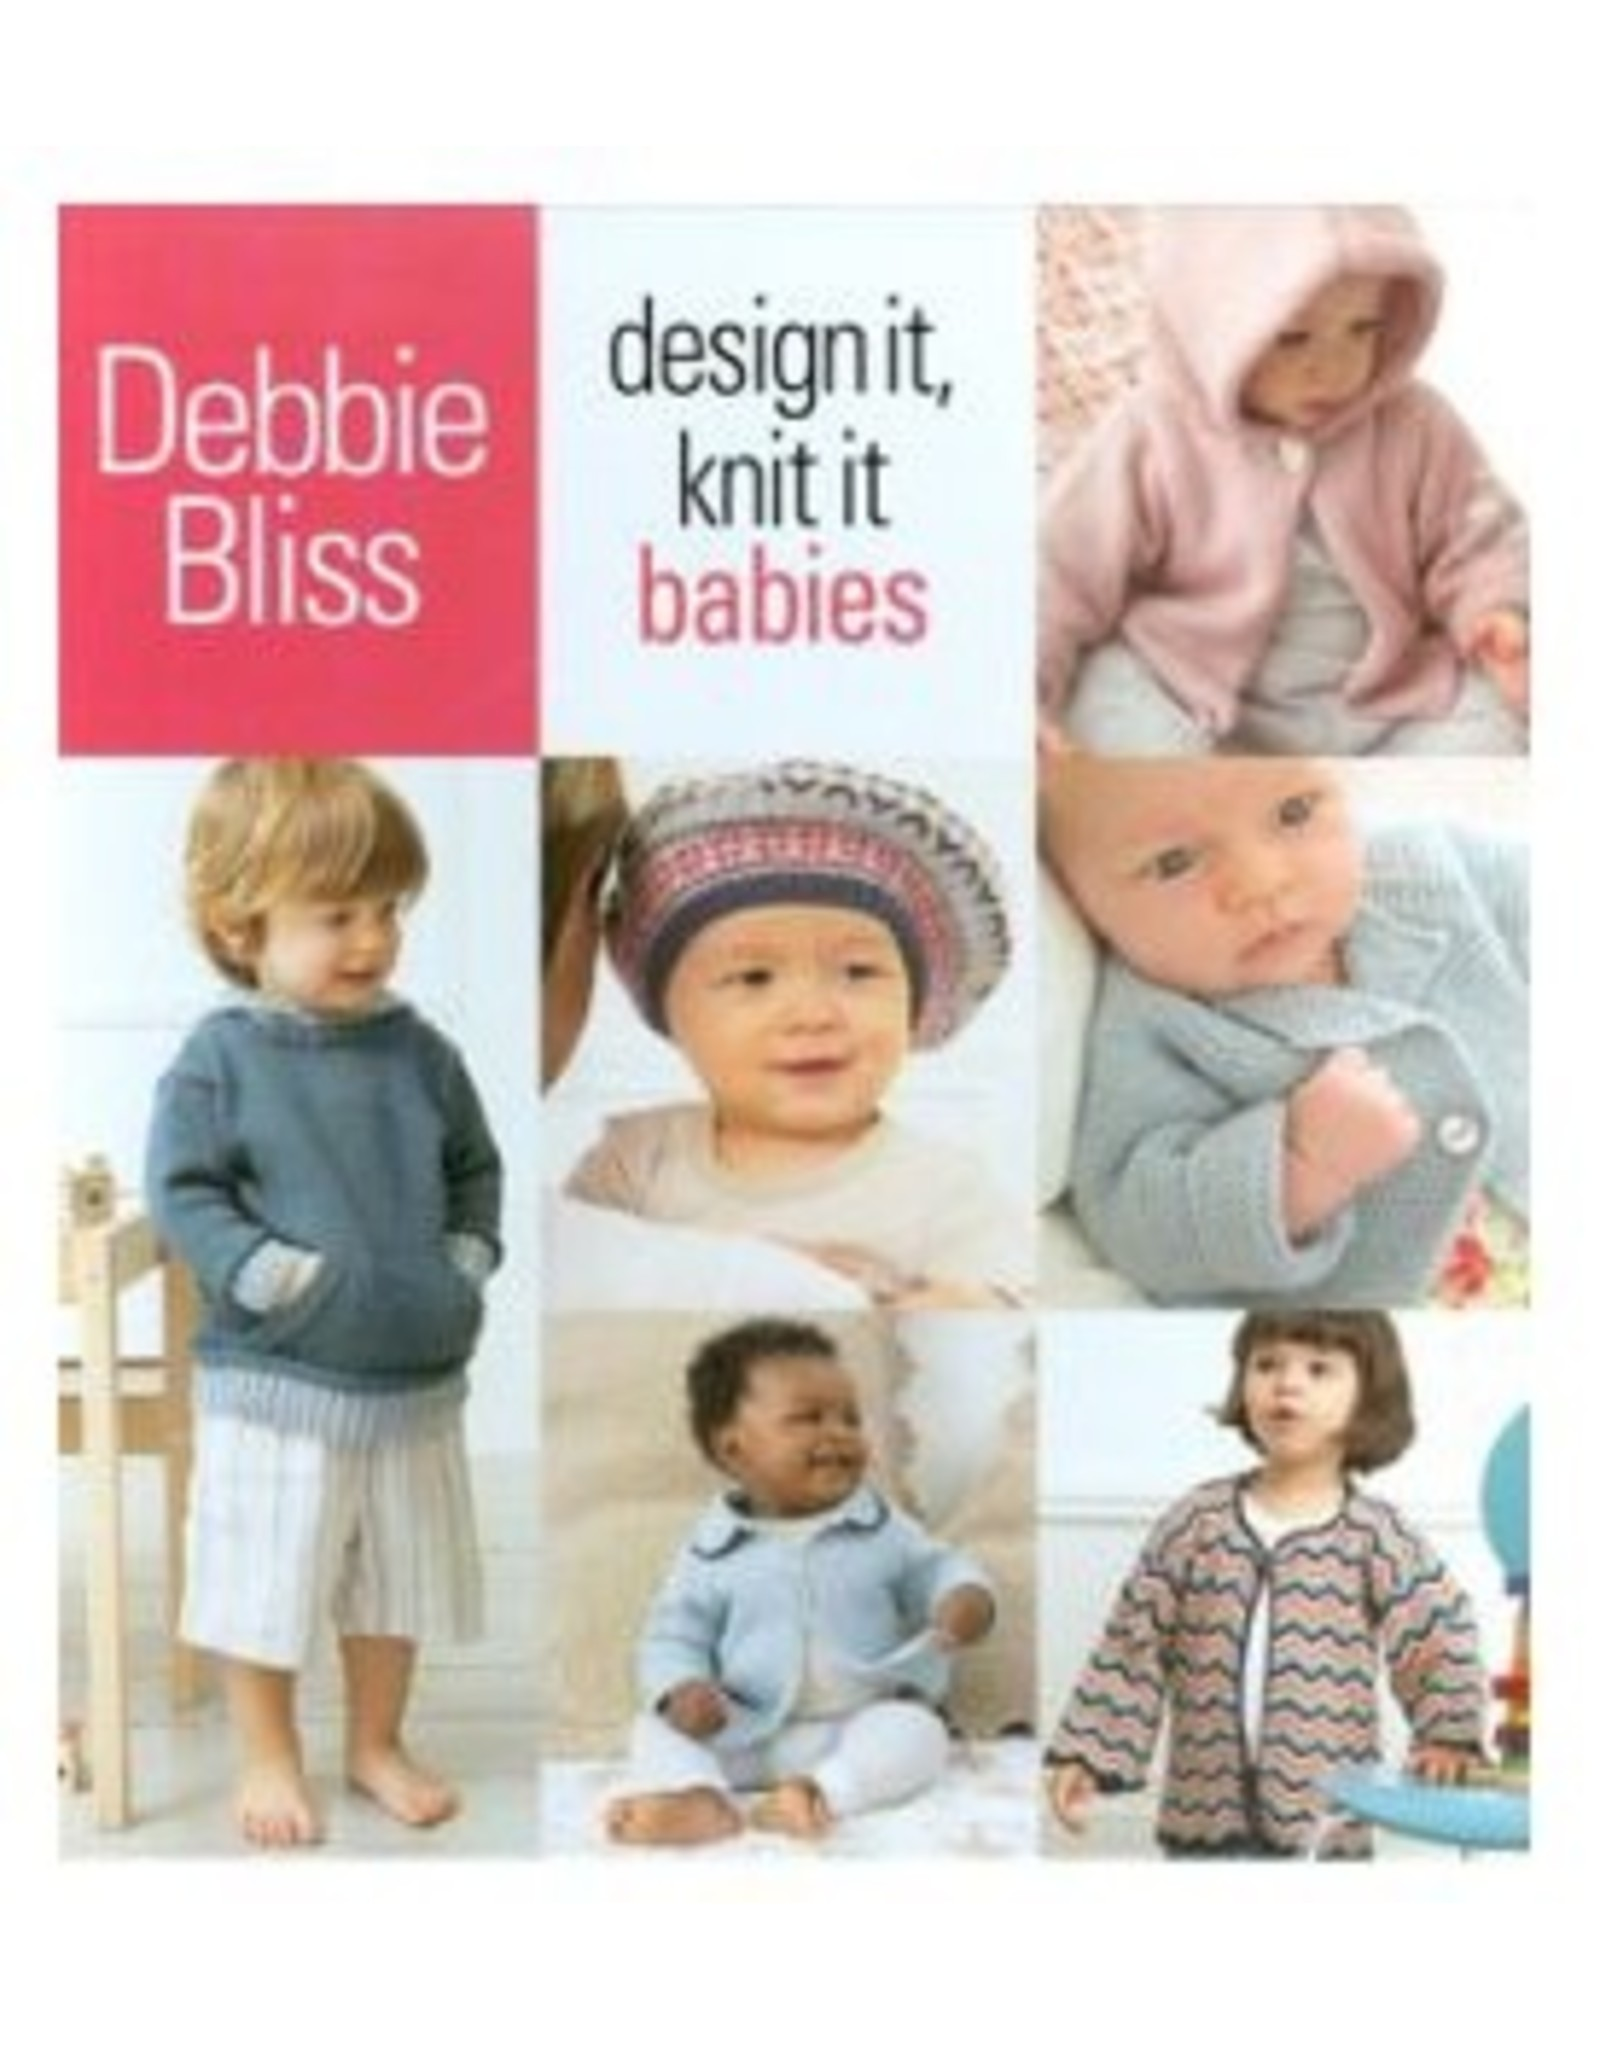 Design It, Knit It- Babies - Debbie Bliss